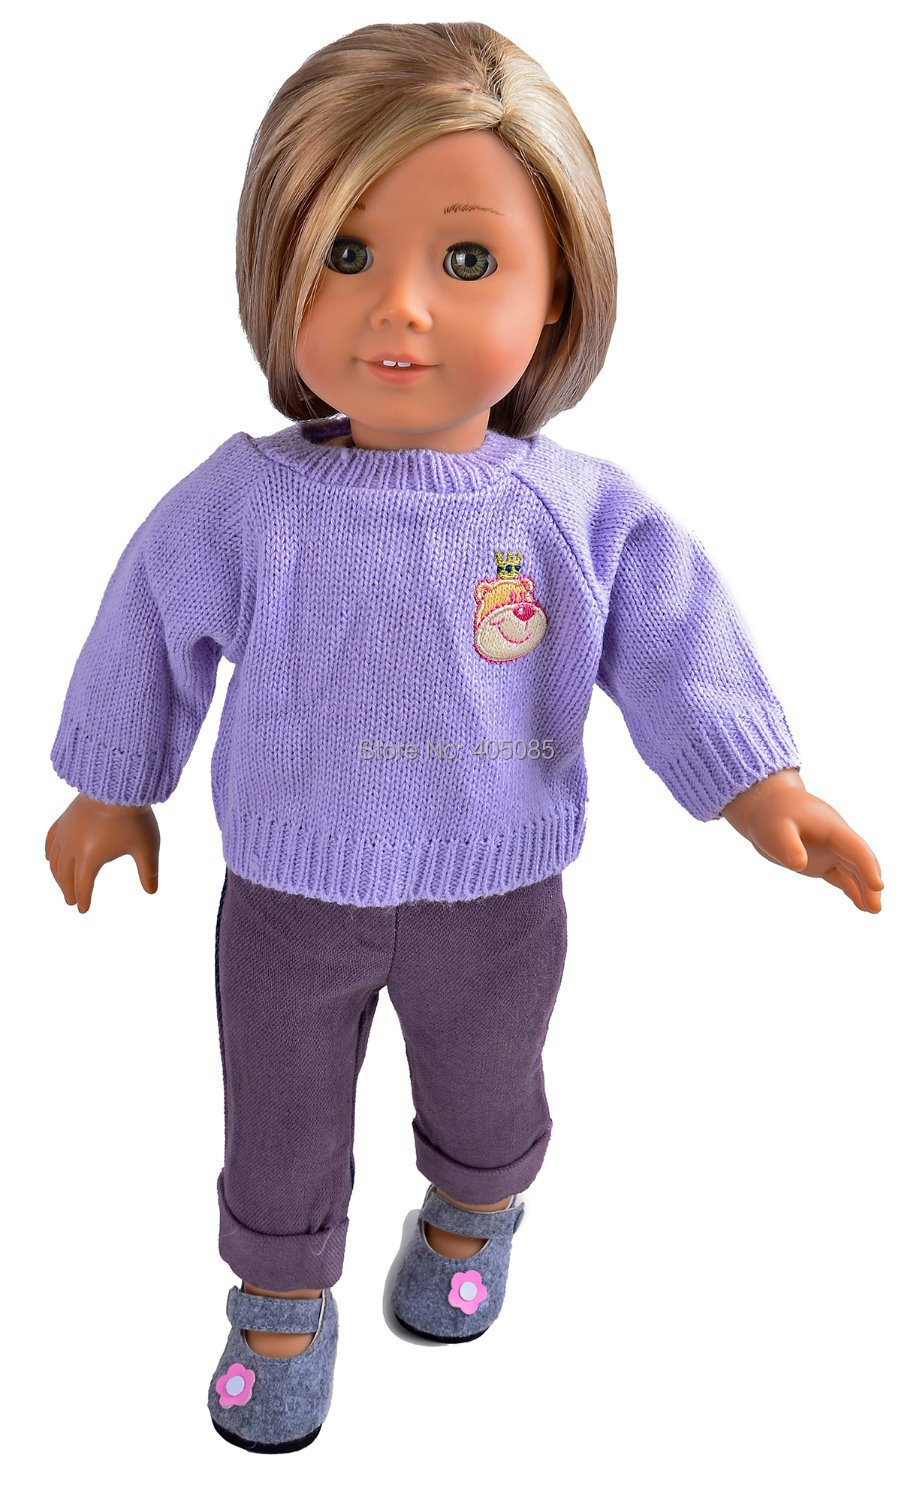 "Wholesales Purple Sweater Top+Jeans Handmade Doll Clothes For 18"" American Girl(China (Mainland))"